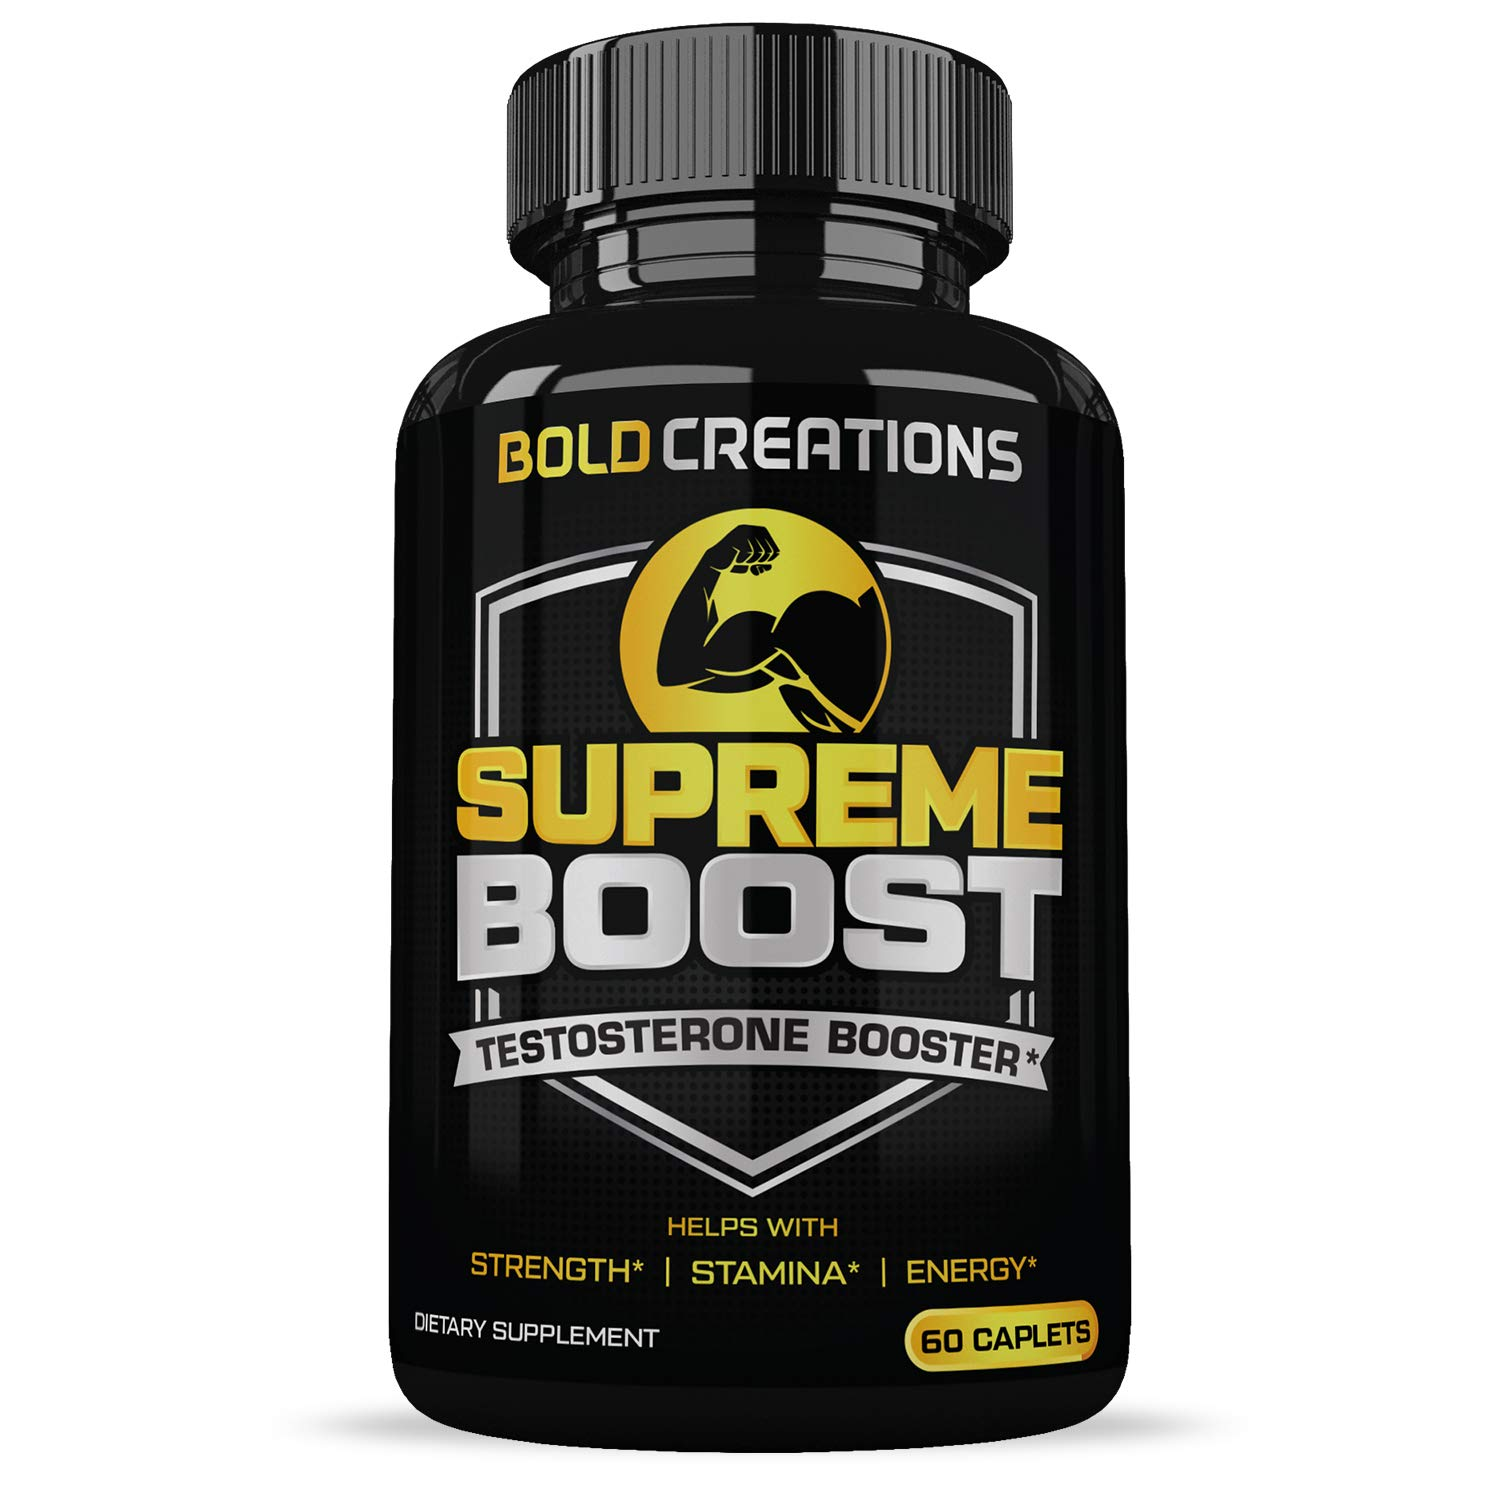 Men's Extra Strength Testosterone Booster (60 Caplets) Natural Stamina,Strength & Energy Booster Builds Lean Muscle  Increased Performance  Quicker Recovery  Supports Fat Burning & Healthy Weight Loss